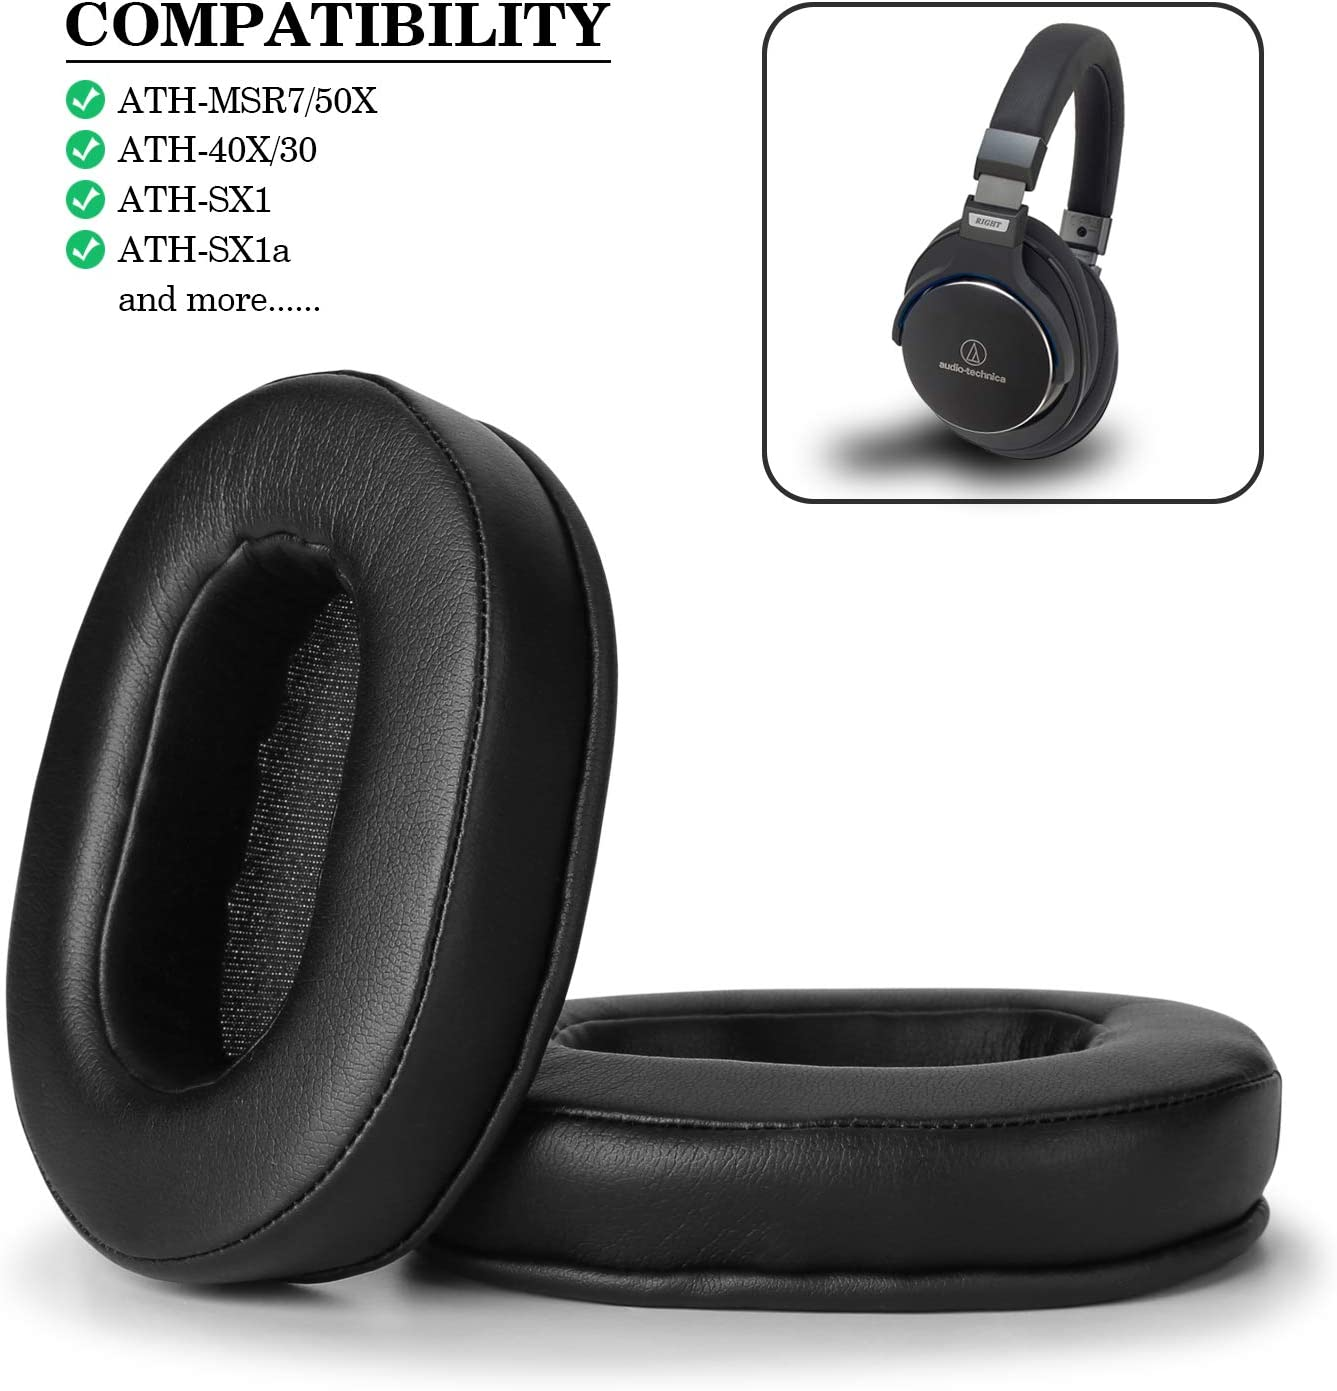 Replacement Ear Pads for ATH M50x, WADEO Ear Cushions Kit Memory Foam Earpads Cover Compatible with Audio Technica M40X M30X M20 Sony MDR-7506 V6 CD900ST Ultrasone and More (Full List Inside), Black